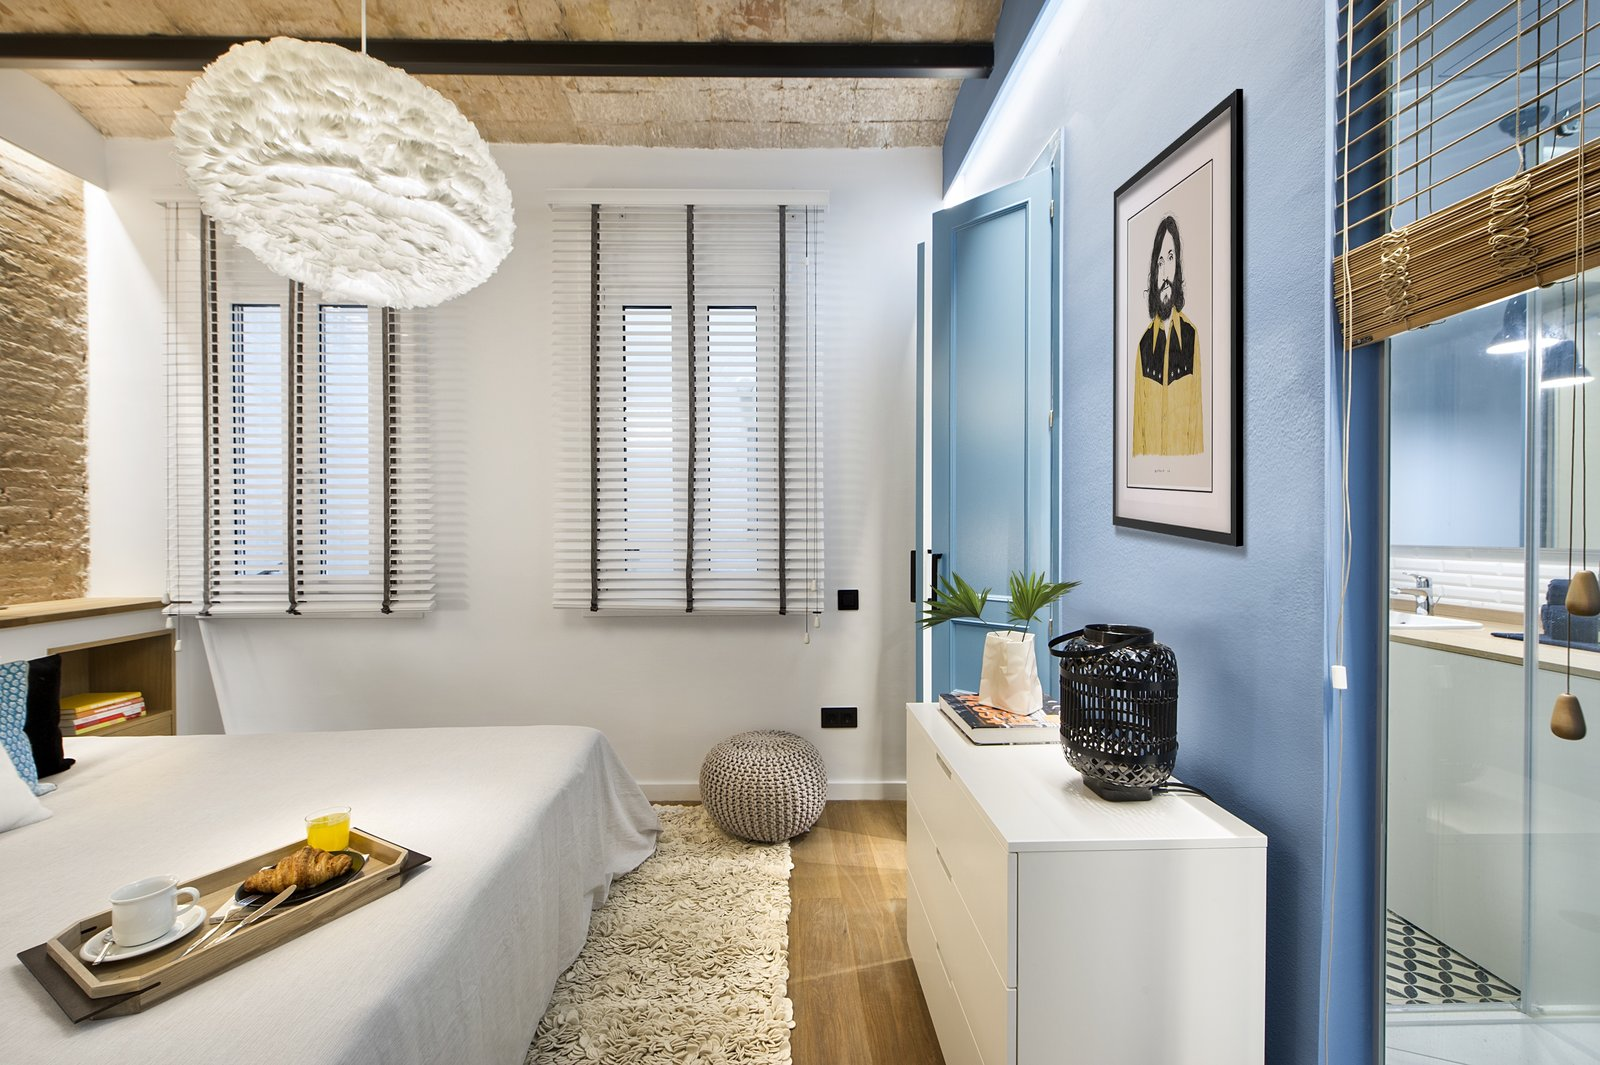 Bedroom, Bed, Shelves, Dresser, Pendant Lighting, and Light Hardwood Floor  Urban Beach Home from A Smart Layout Maximizes Space in This Compact Urban Beach Apartment in Barcelona